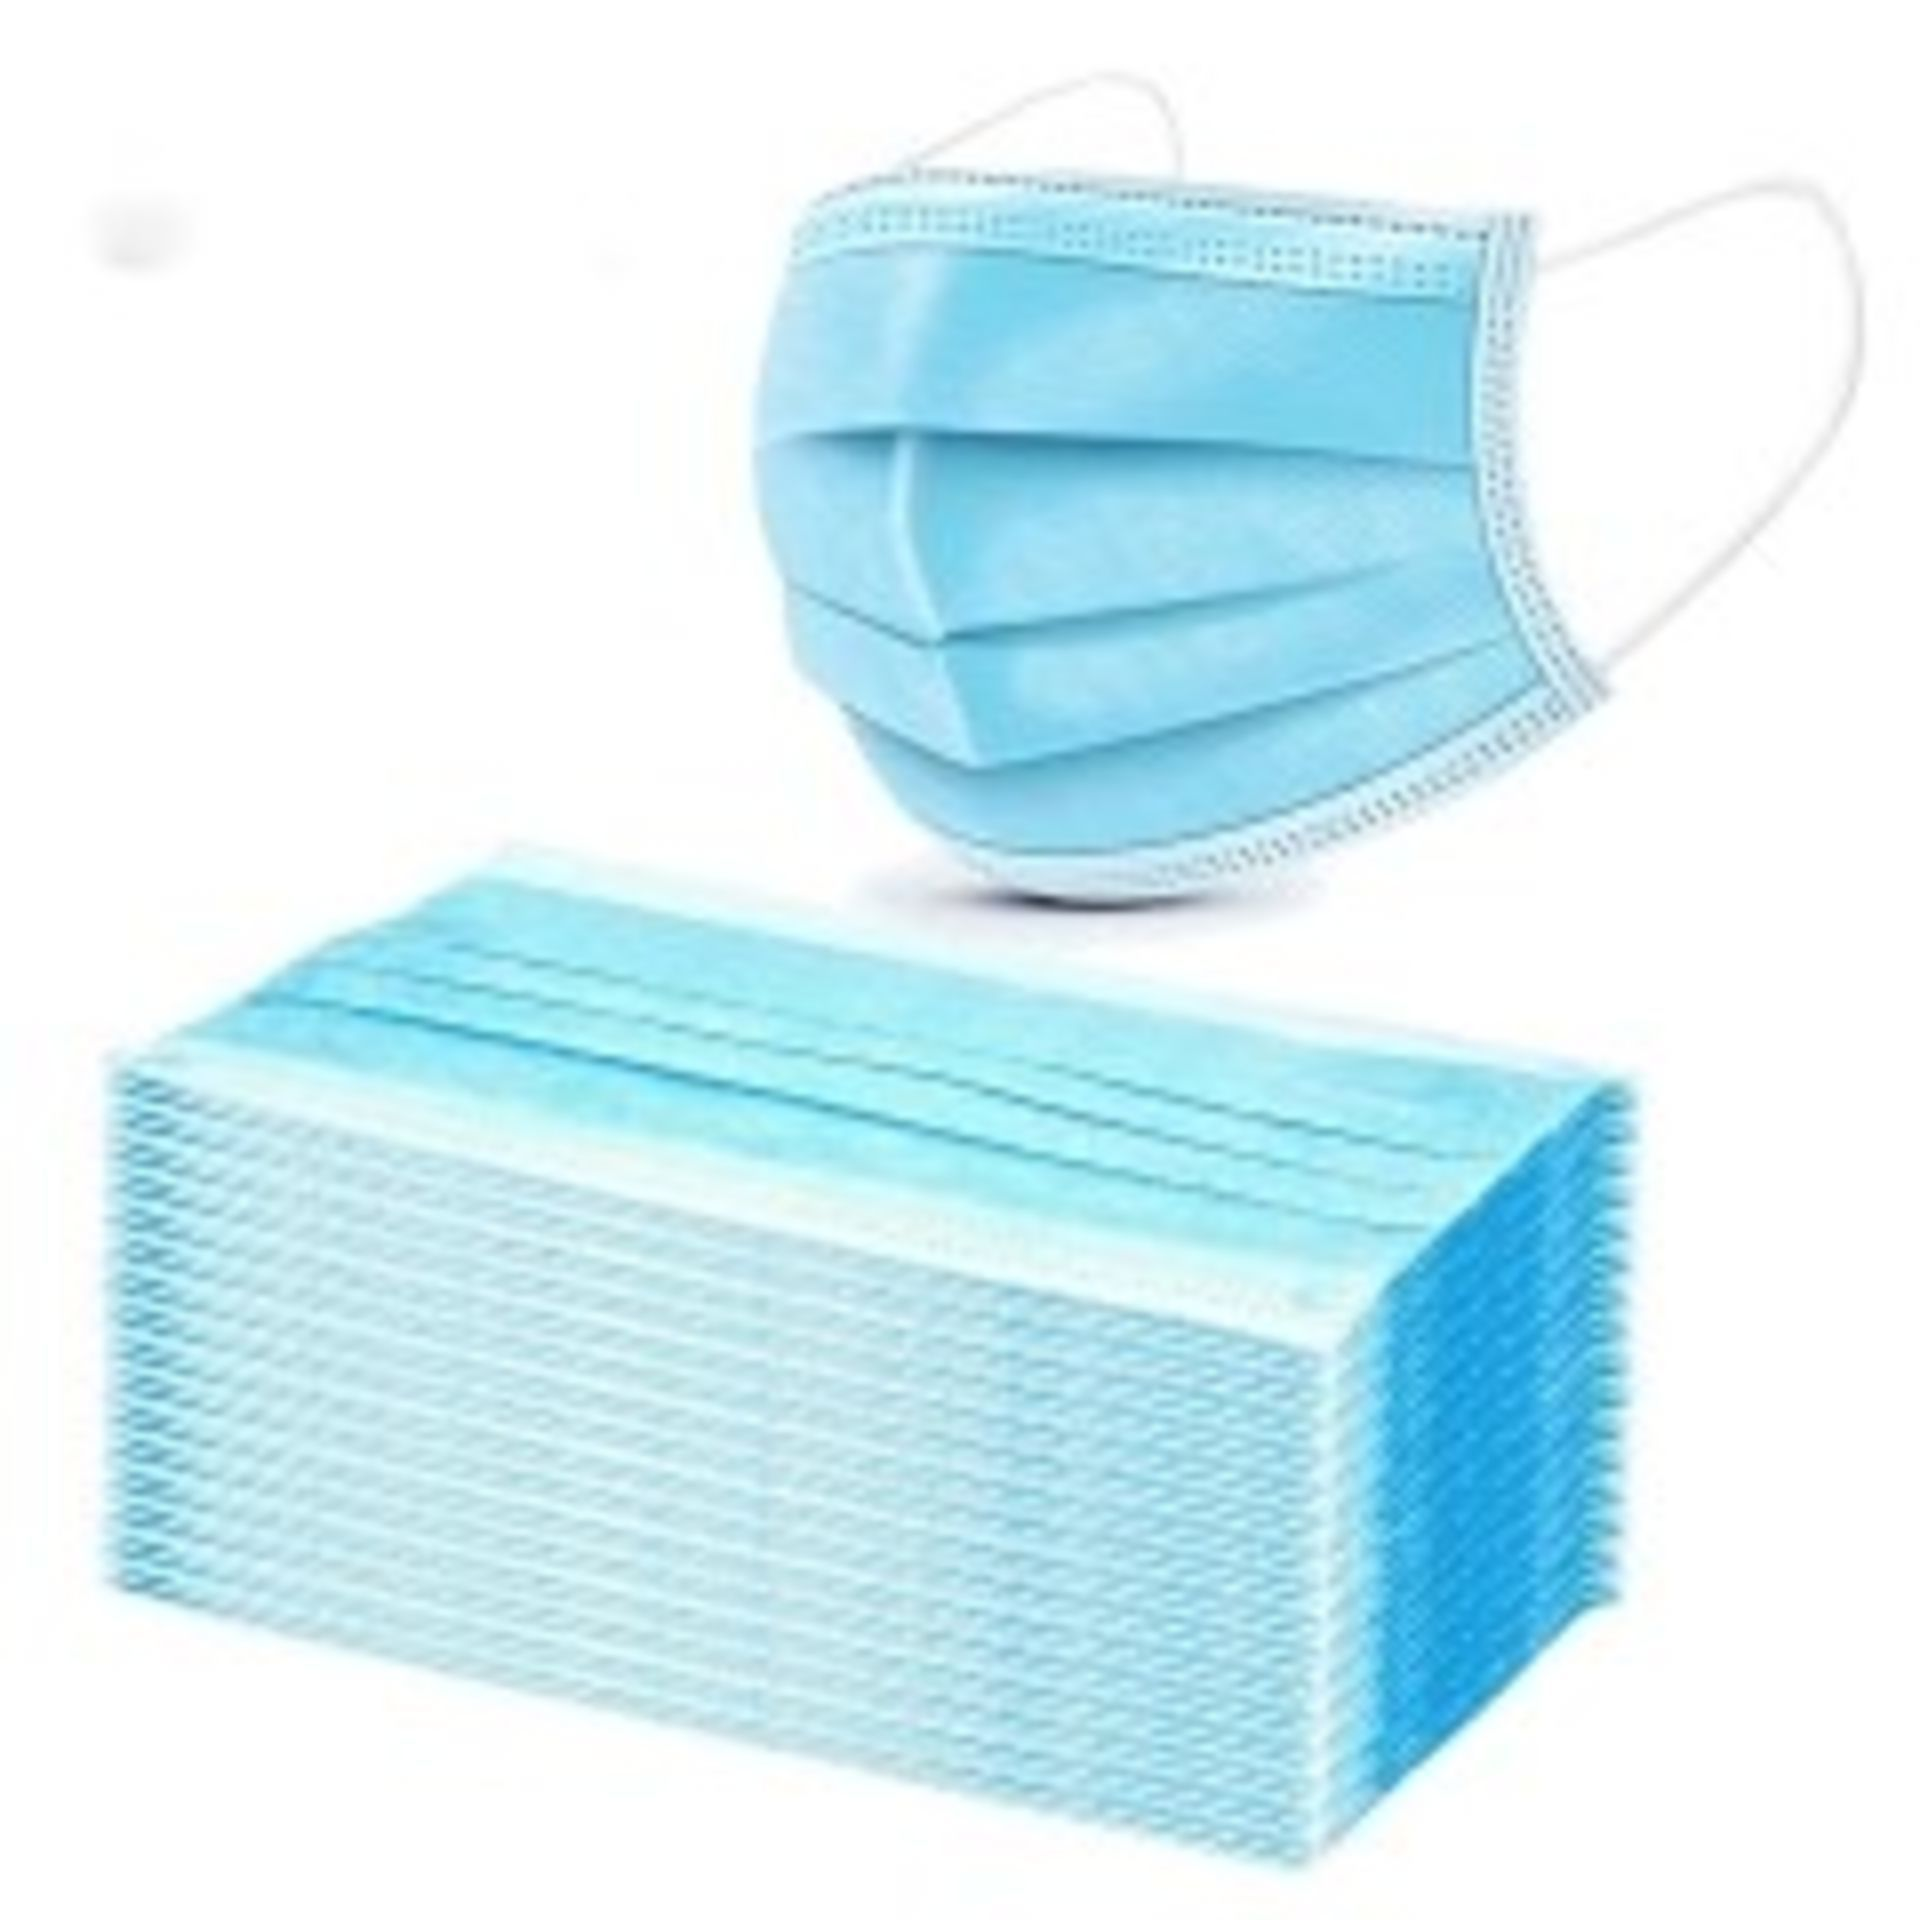 Lot 34 - 500 IN TOTAL 3 X PLY DISPOSABLE FACE MASKS *NO VAT*